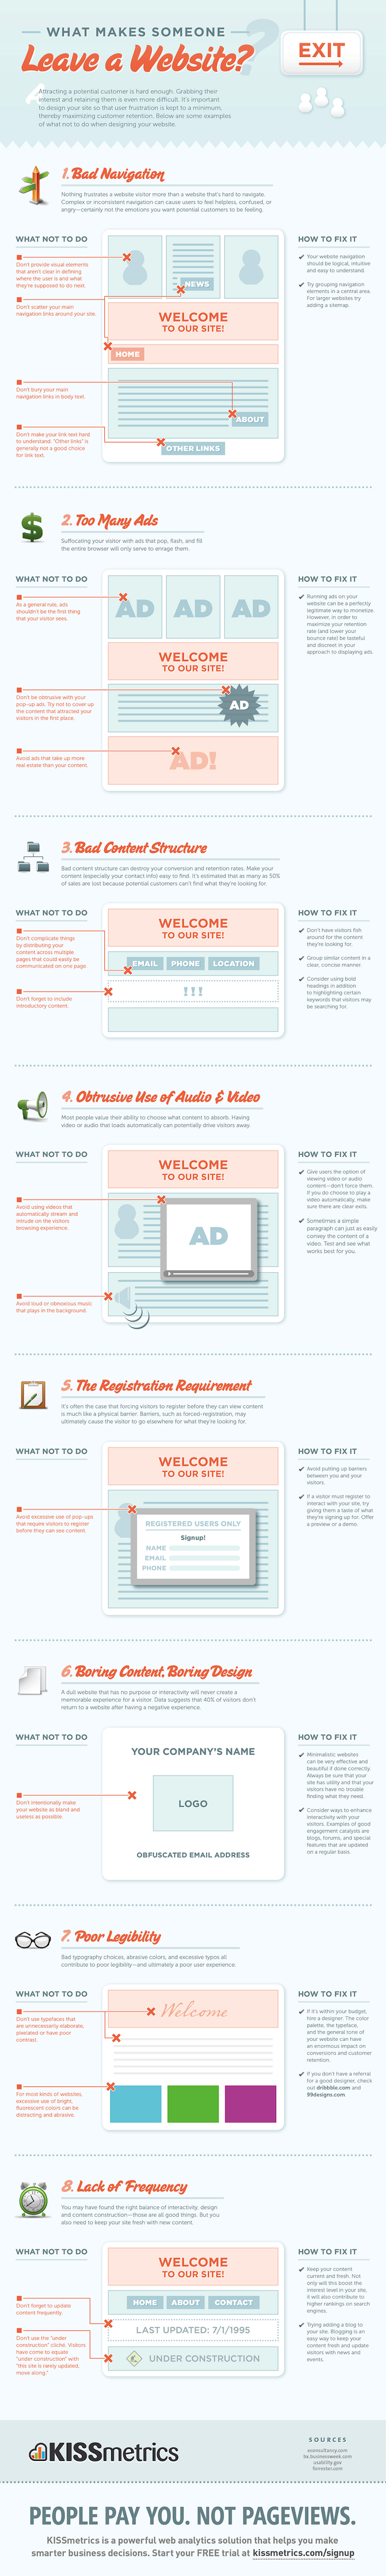 KissMetrics infographic.